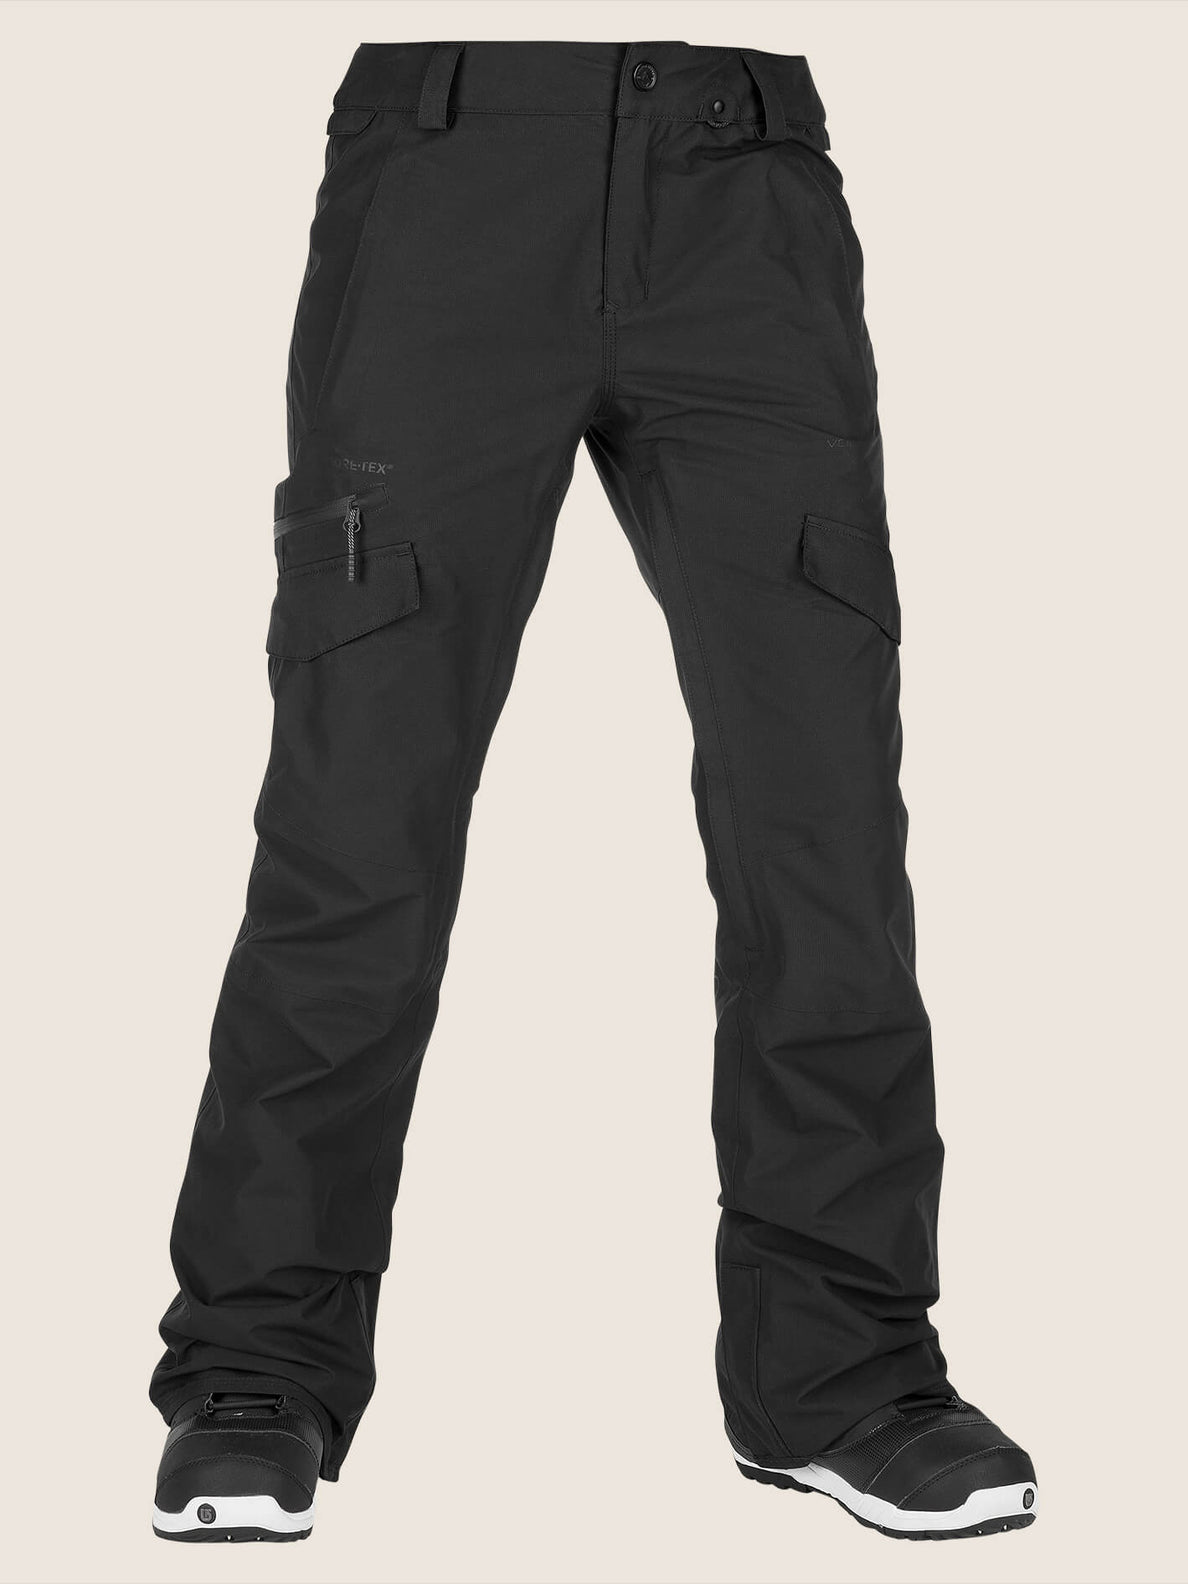 Aston Gore-tex Pant In Black, Front View